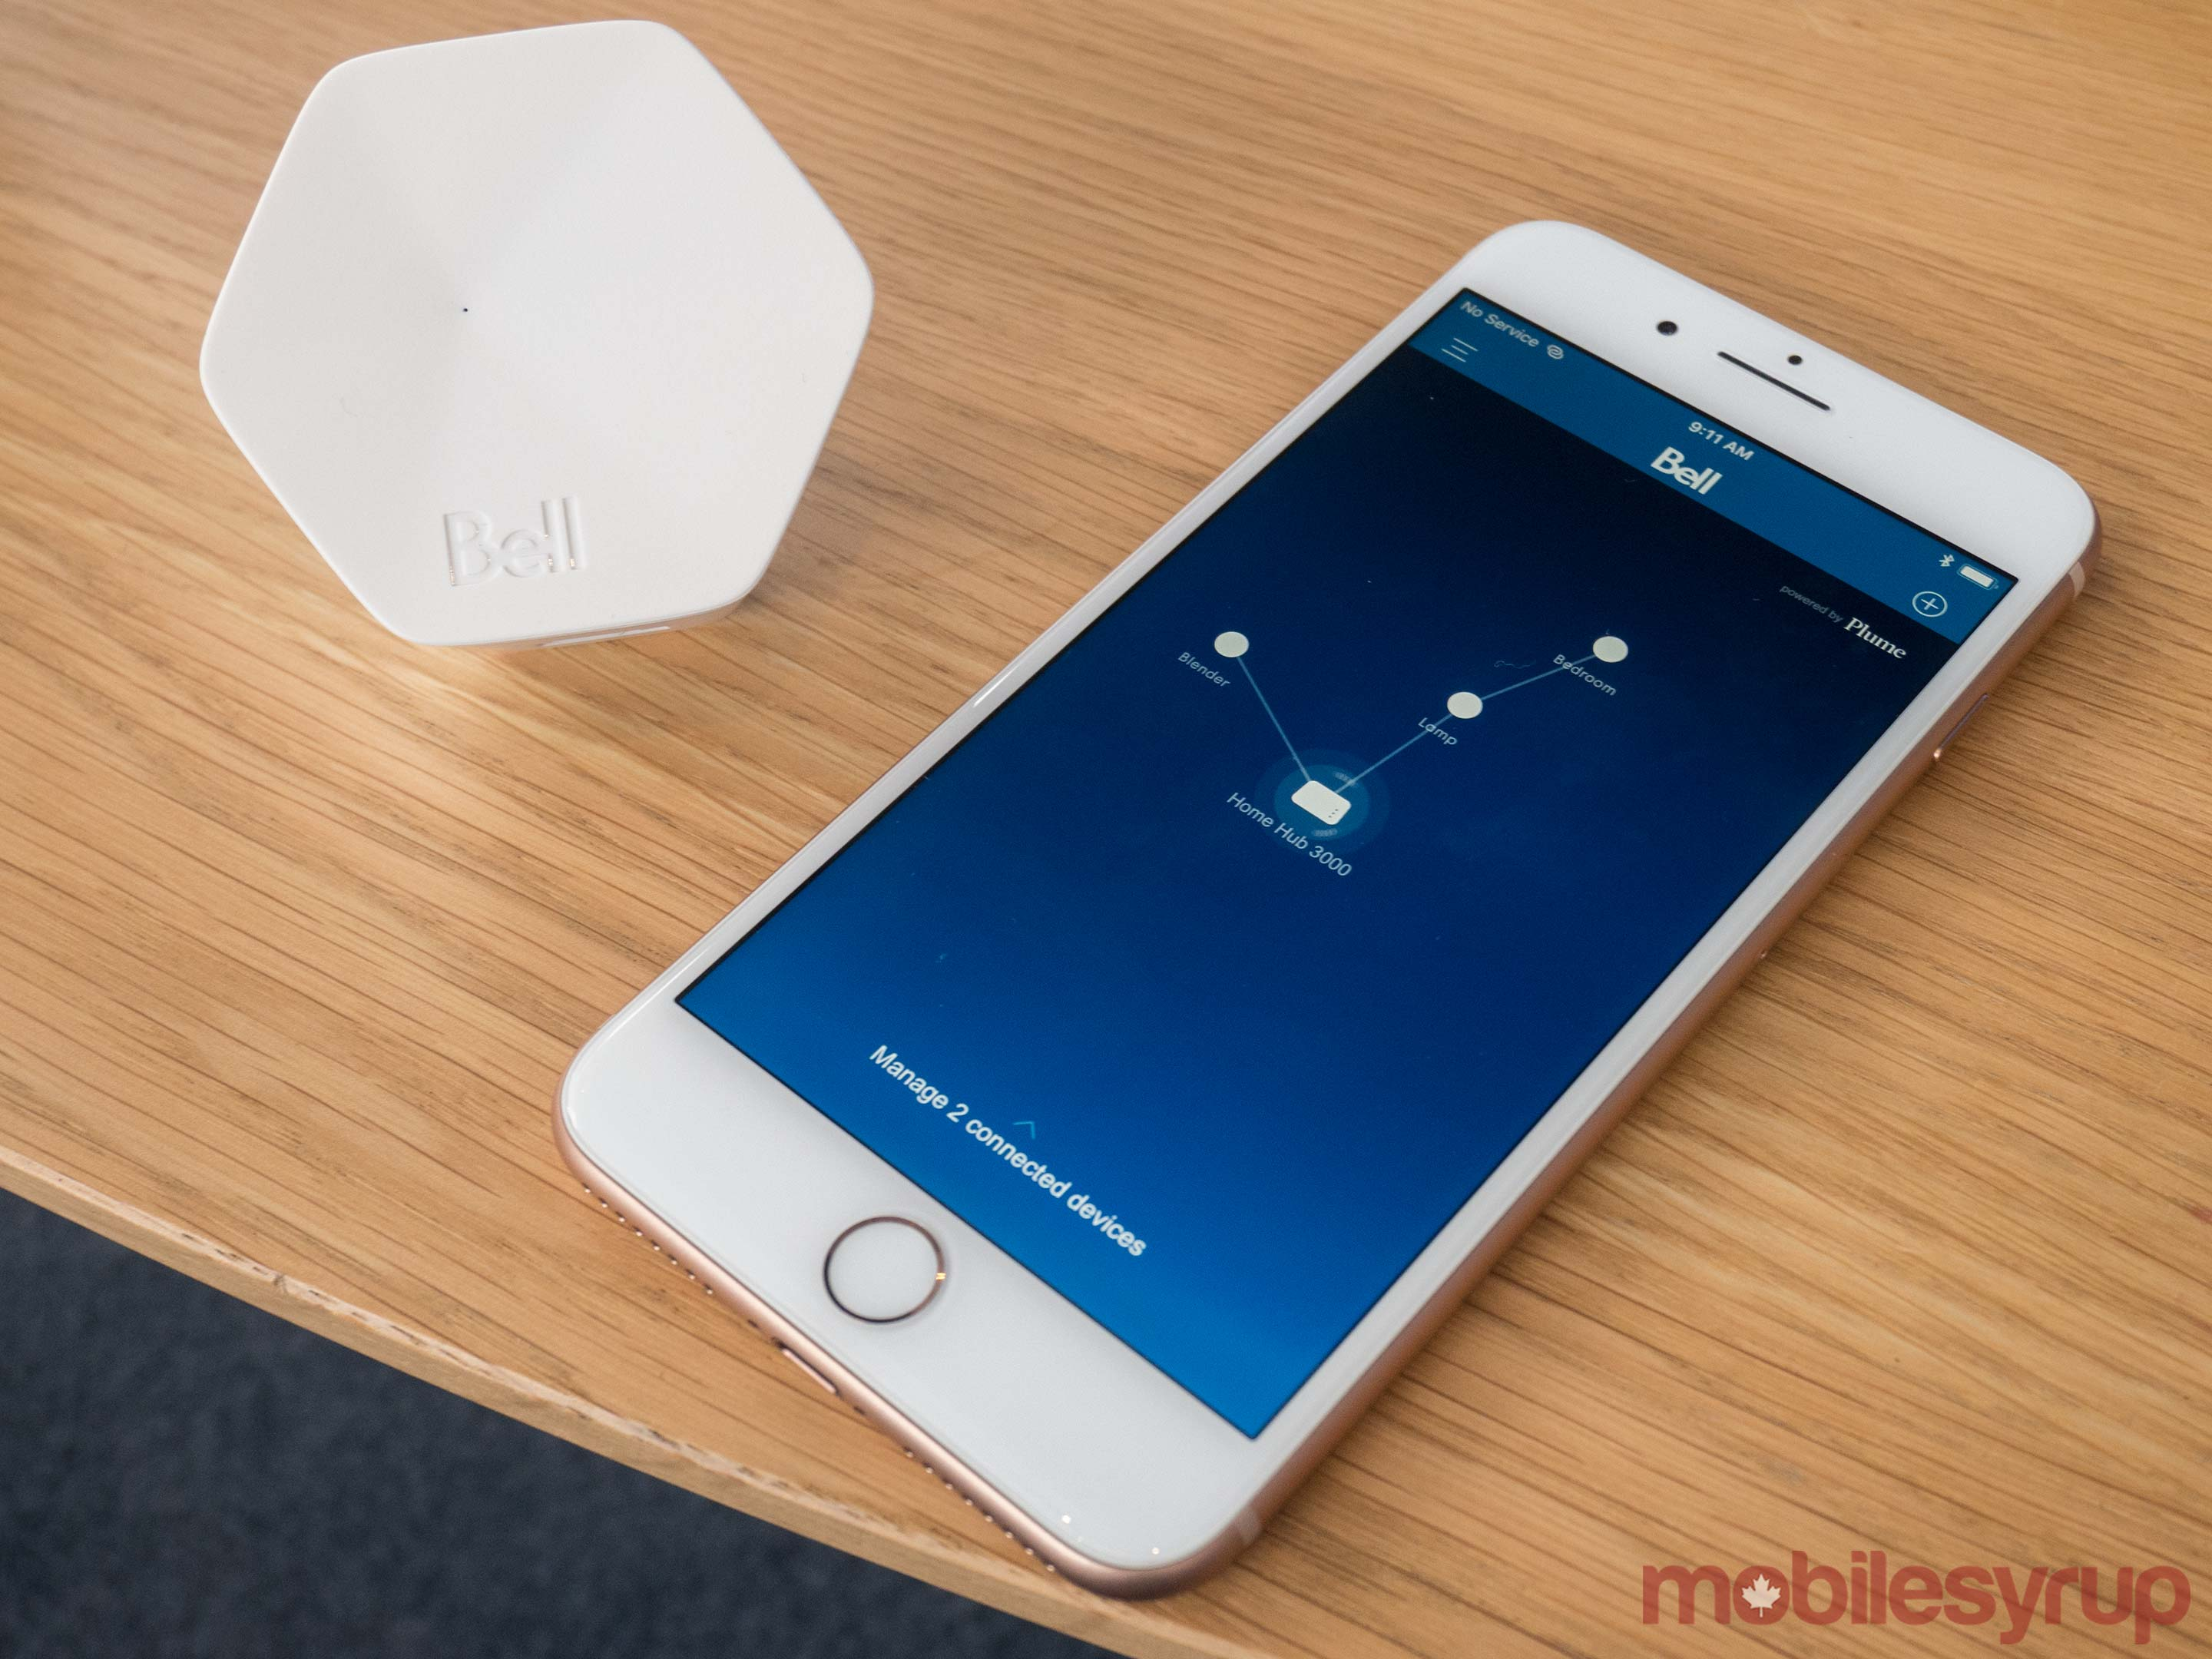 Bell launches Whole Home Wi-Fi mesh network set for $5 monthly fee